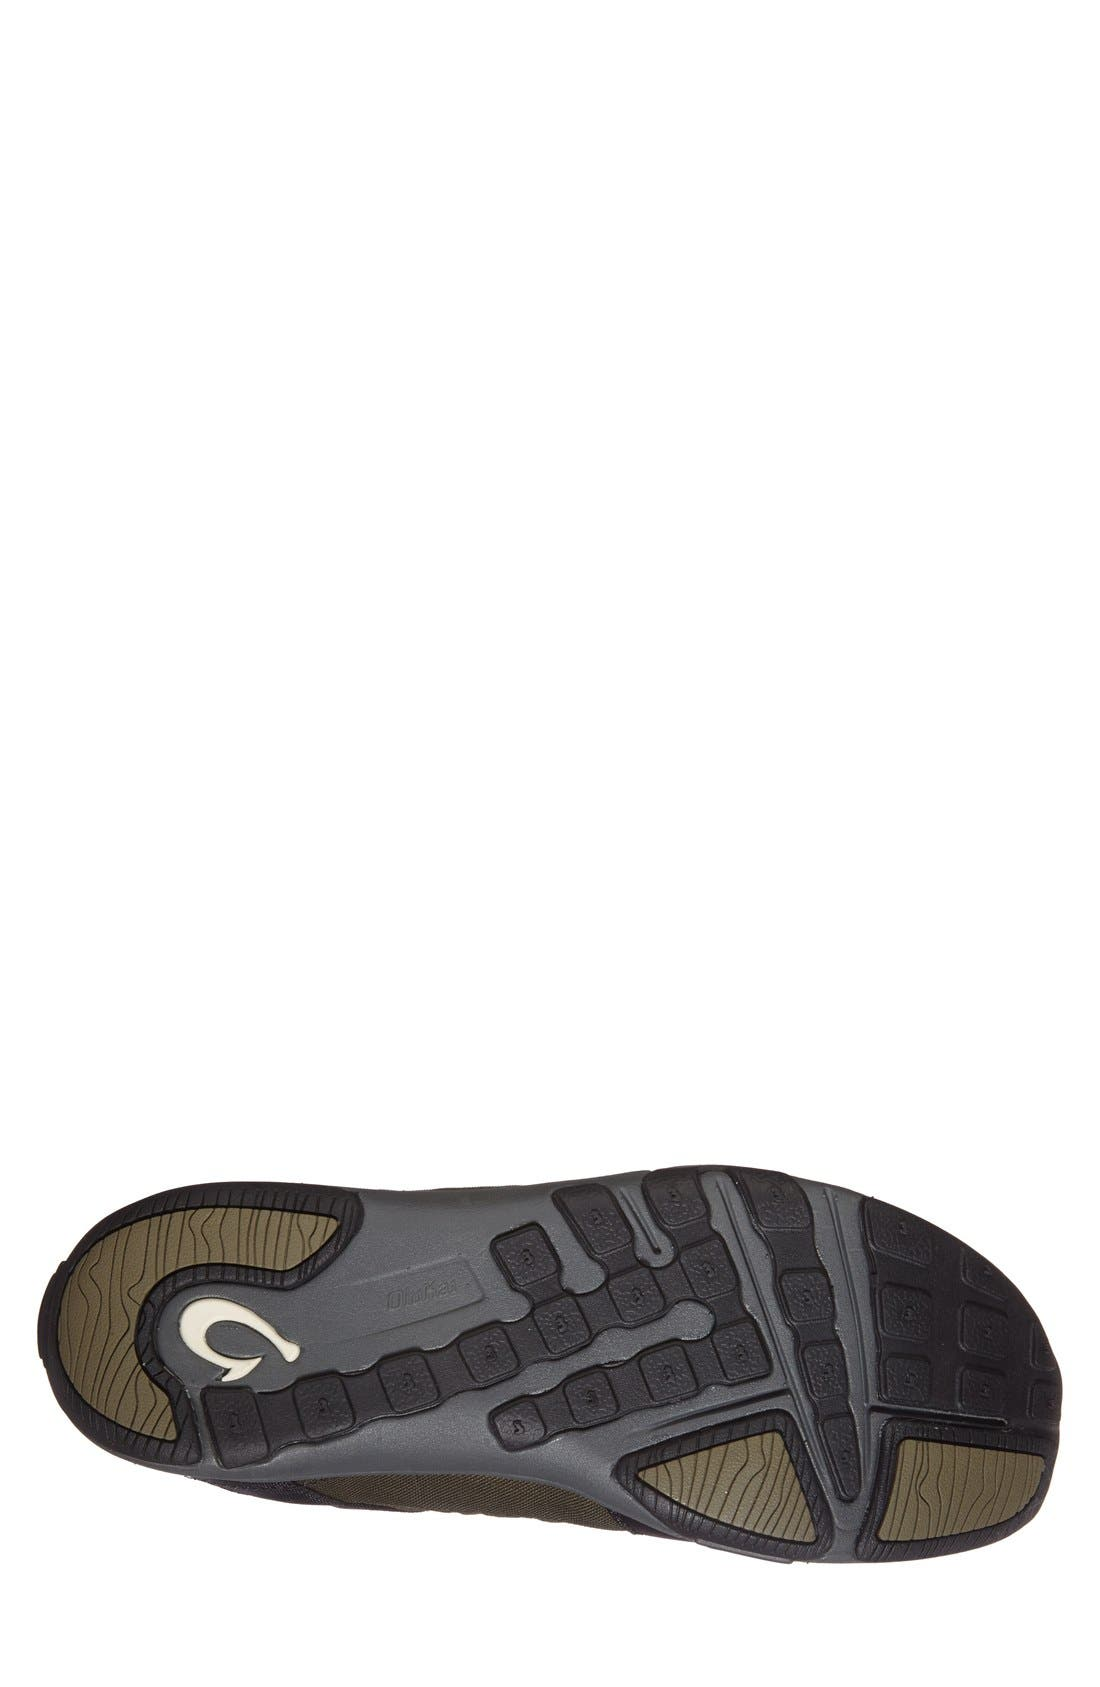 Alternate Image 4  - OluKai 'Kamiki' Amphibious Sneaker (Men)